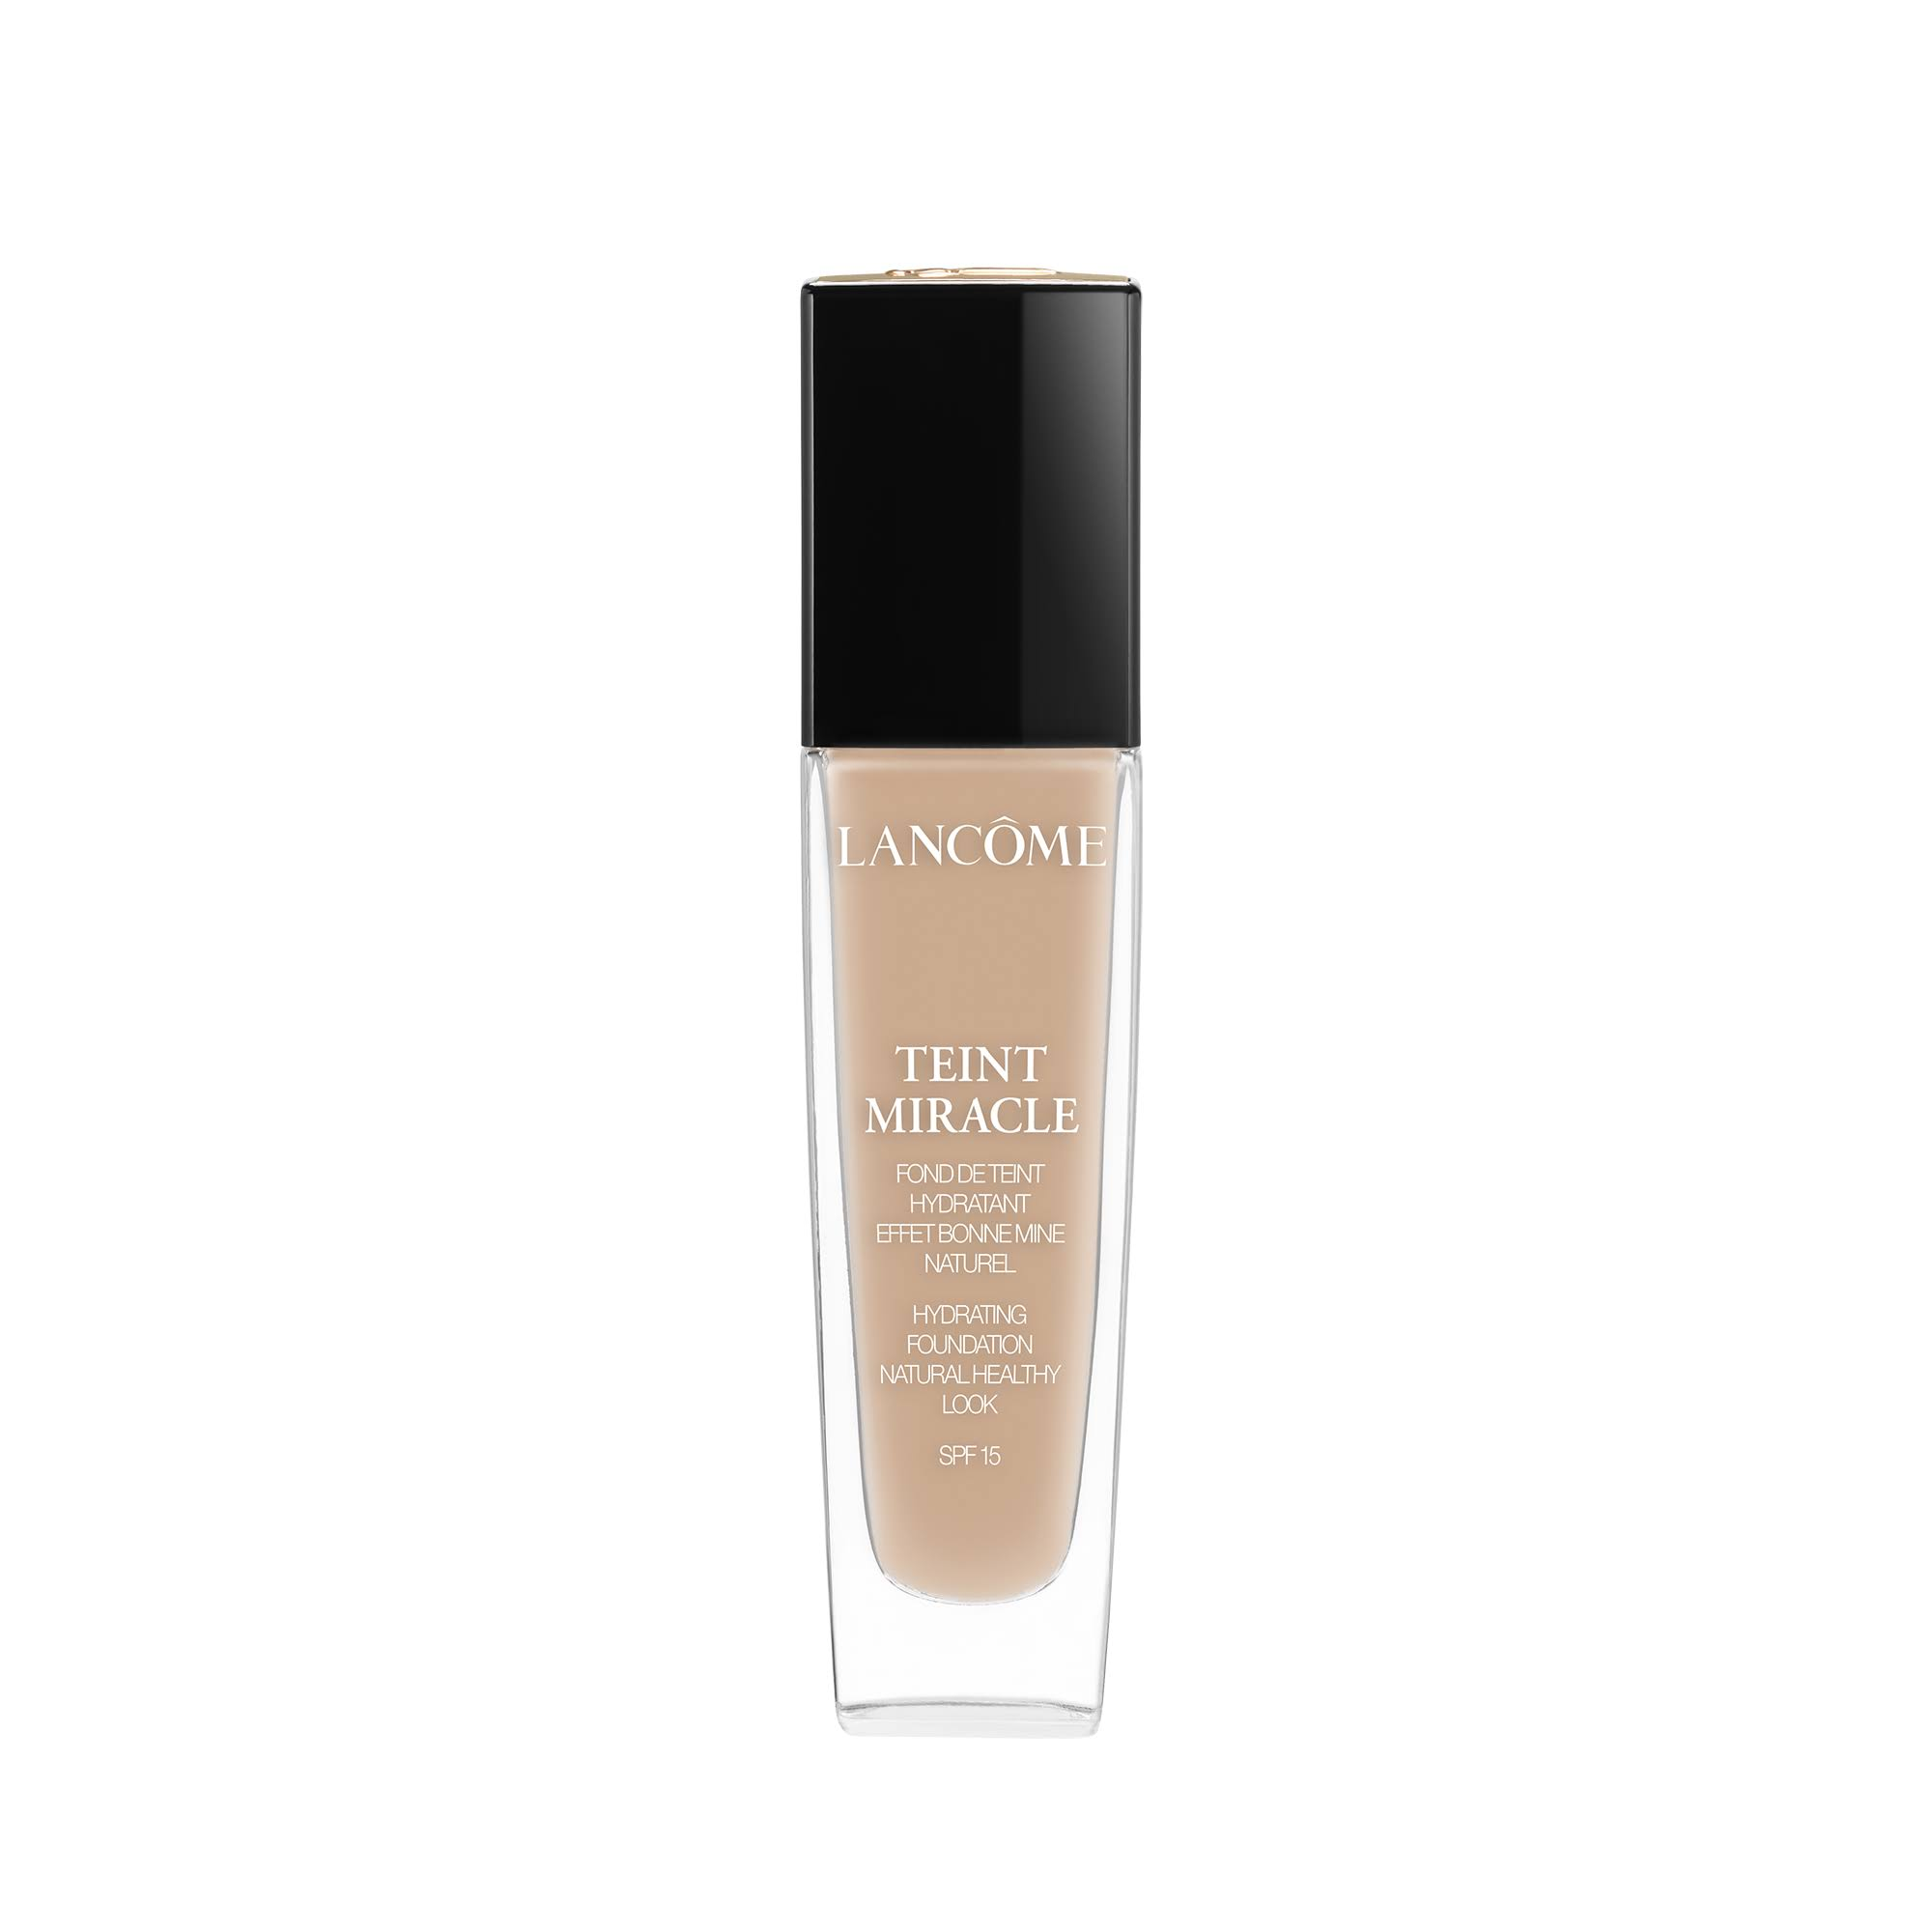 Lancome Teint Miracle Foundation - 045 Sable Beige Medium, 30ml